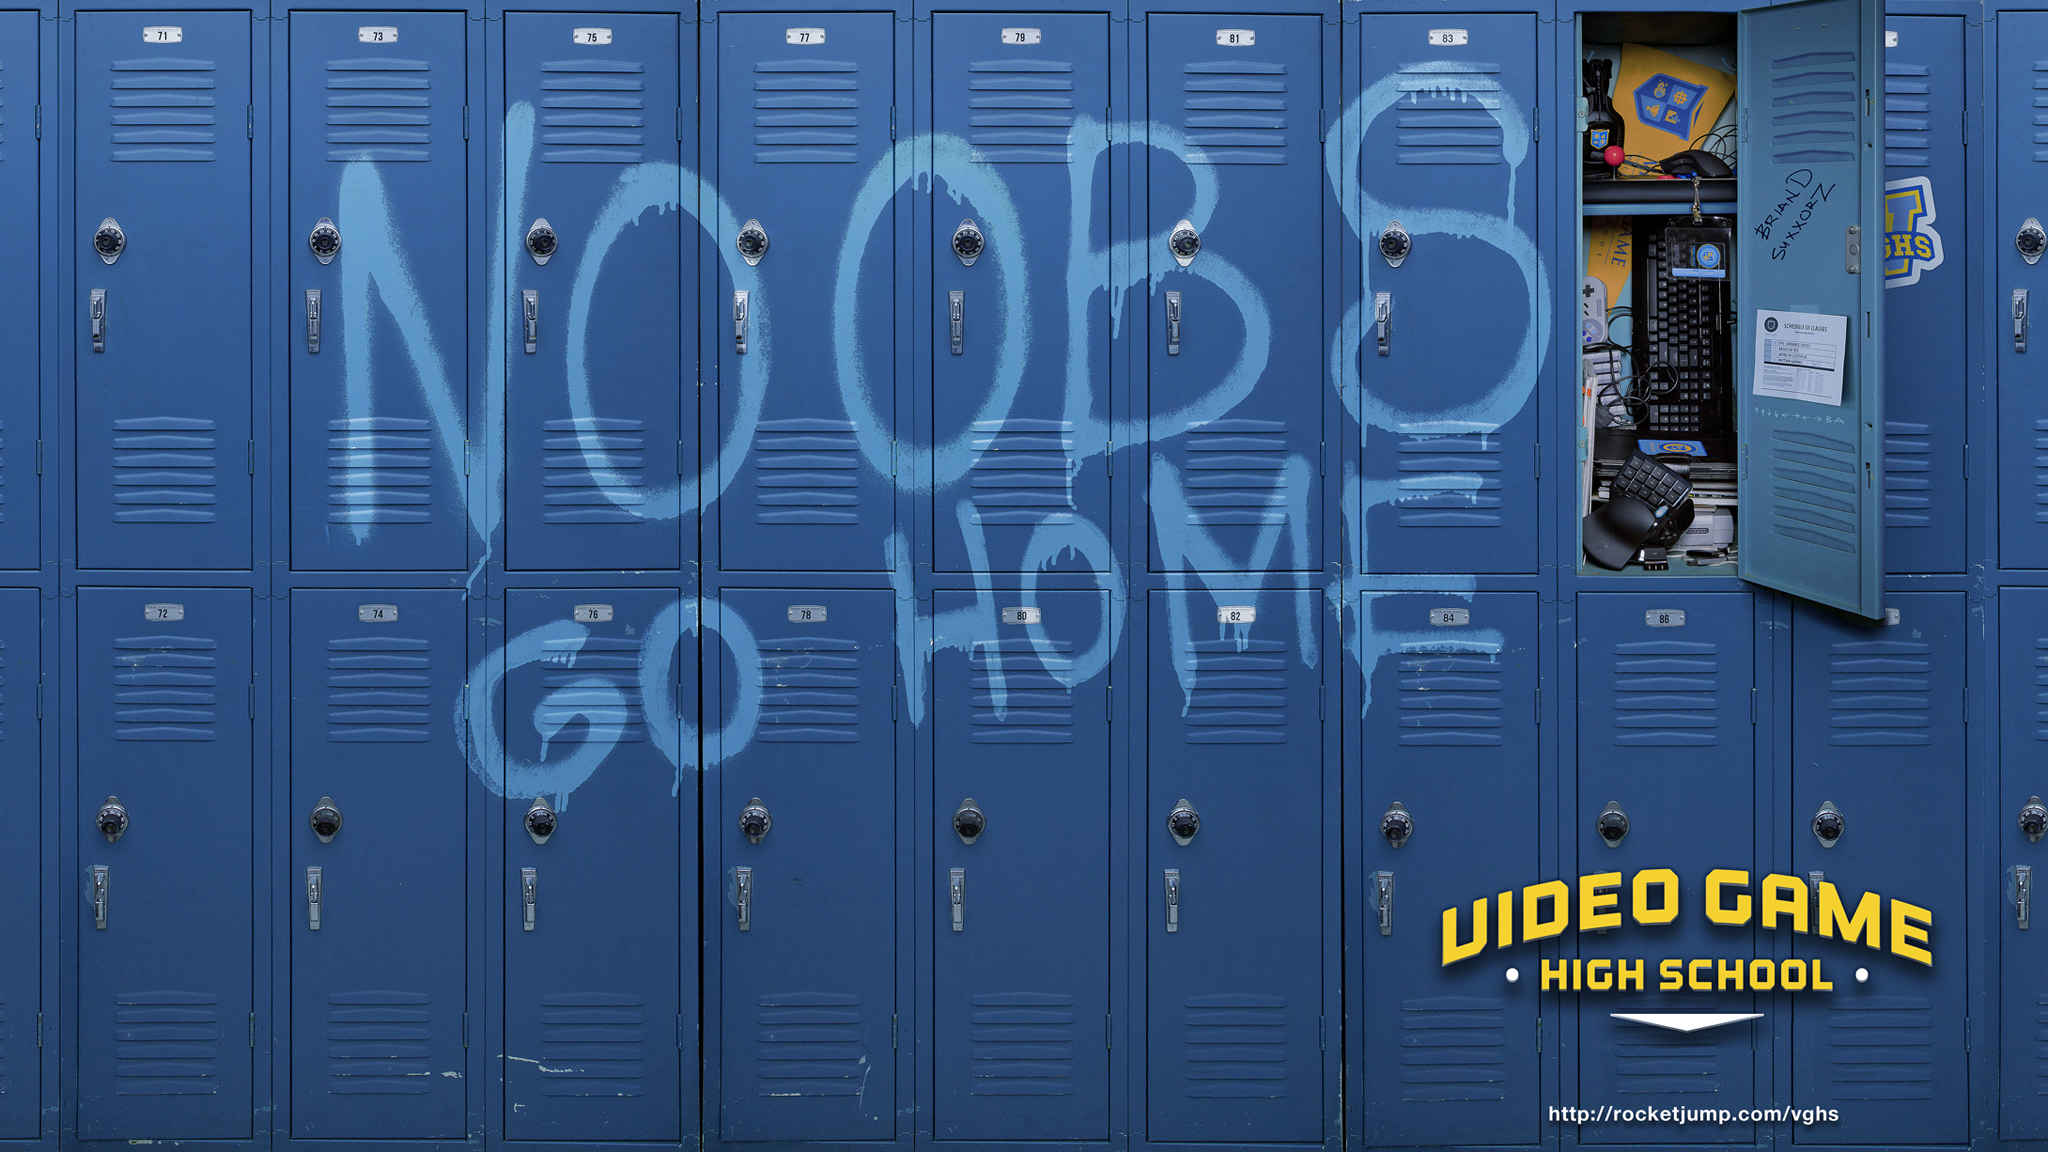 Cute Locker Wallpaper Vghs The Eyewash Station